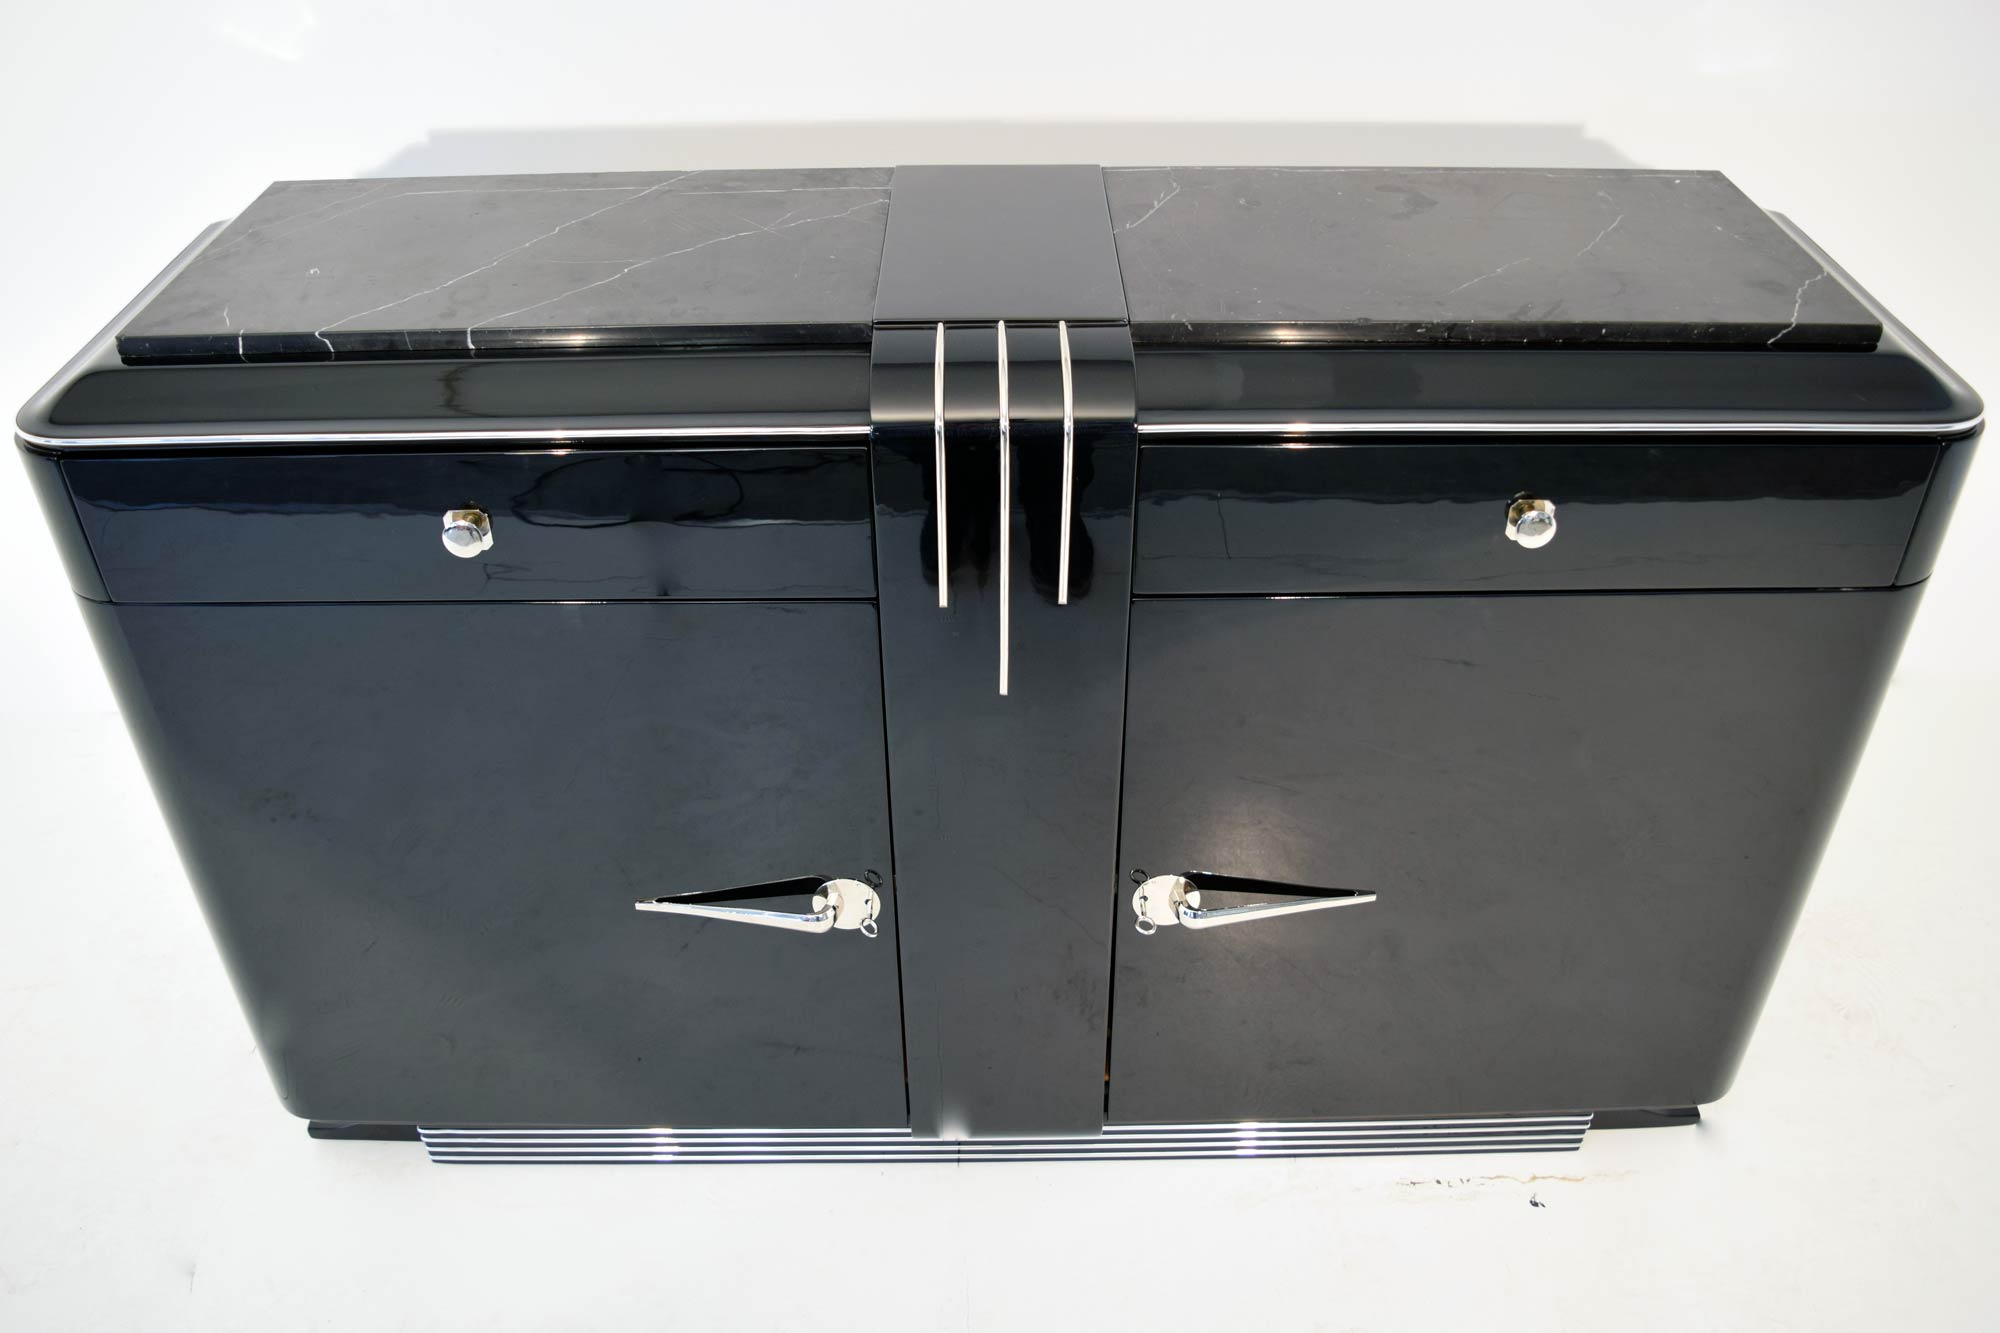 sideboard marmorplatte schwarz klavierlack schwarz zierleisten beschlaege chrom artdeco depot. Black Bedroom Furniture Sets. Home Design Ideas